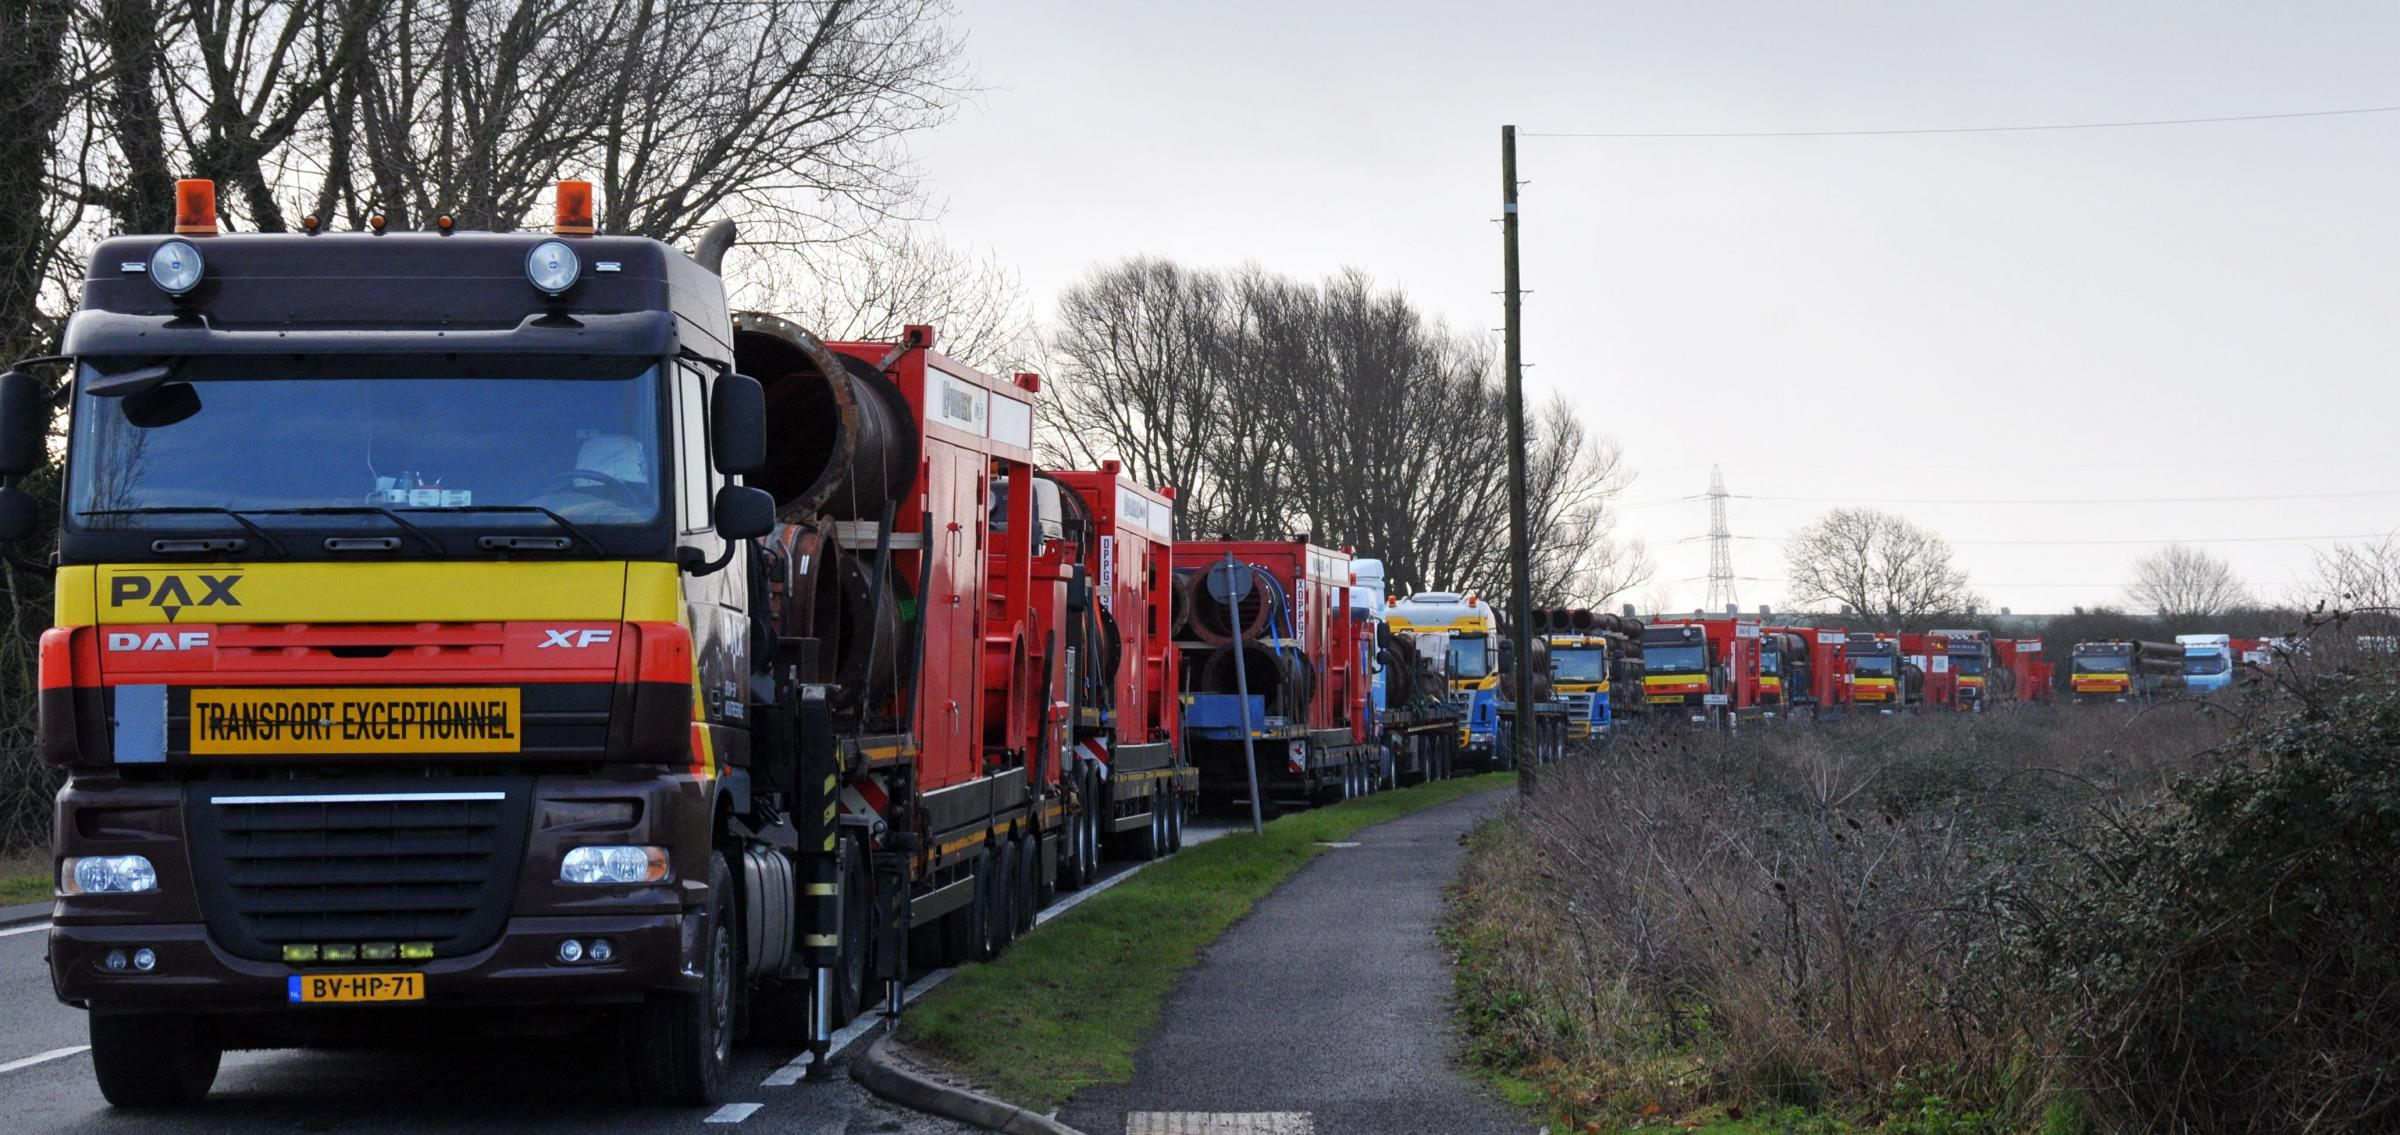 Lorries arrived in Dunball carrying the Dutch pumps.